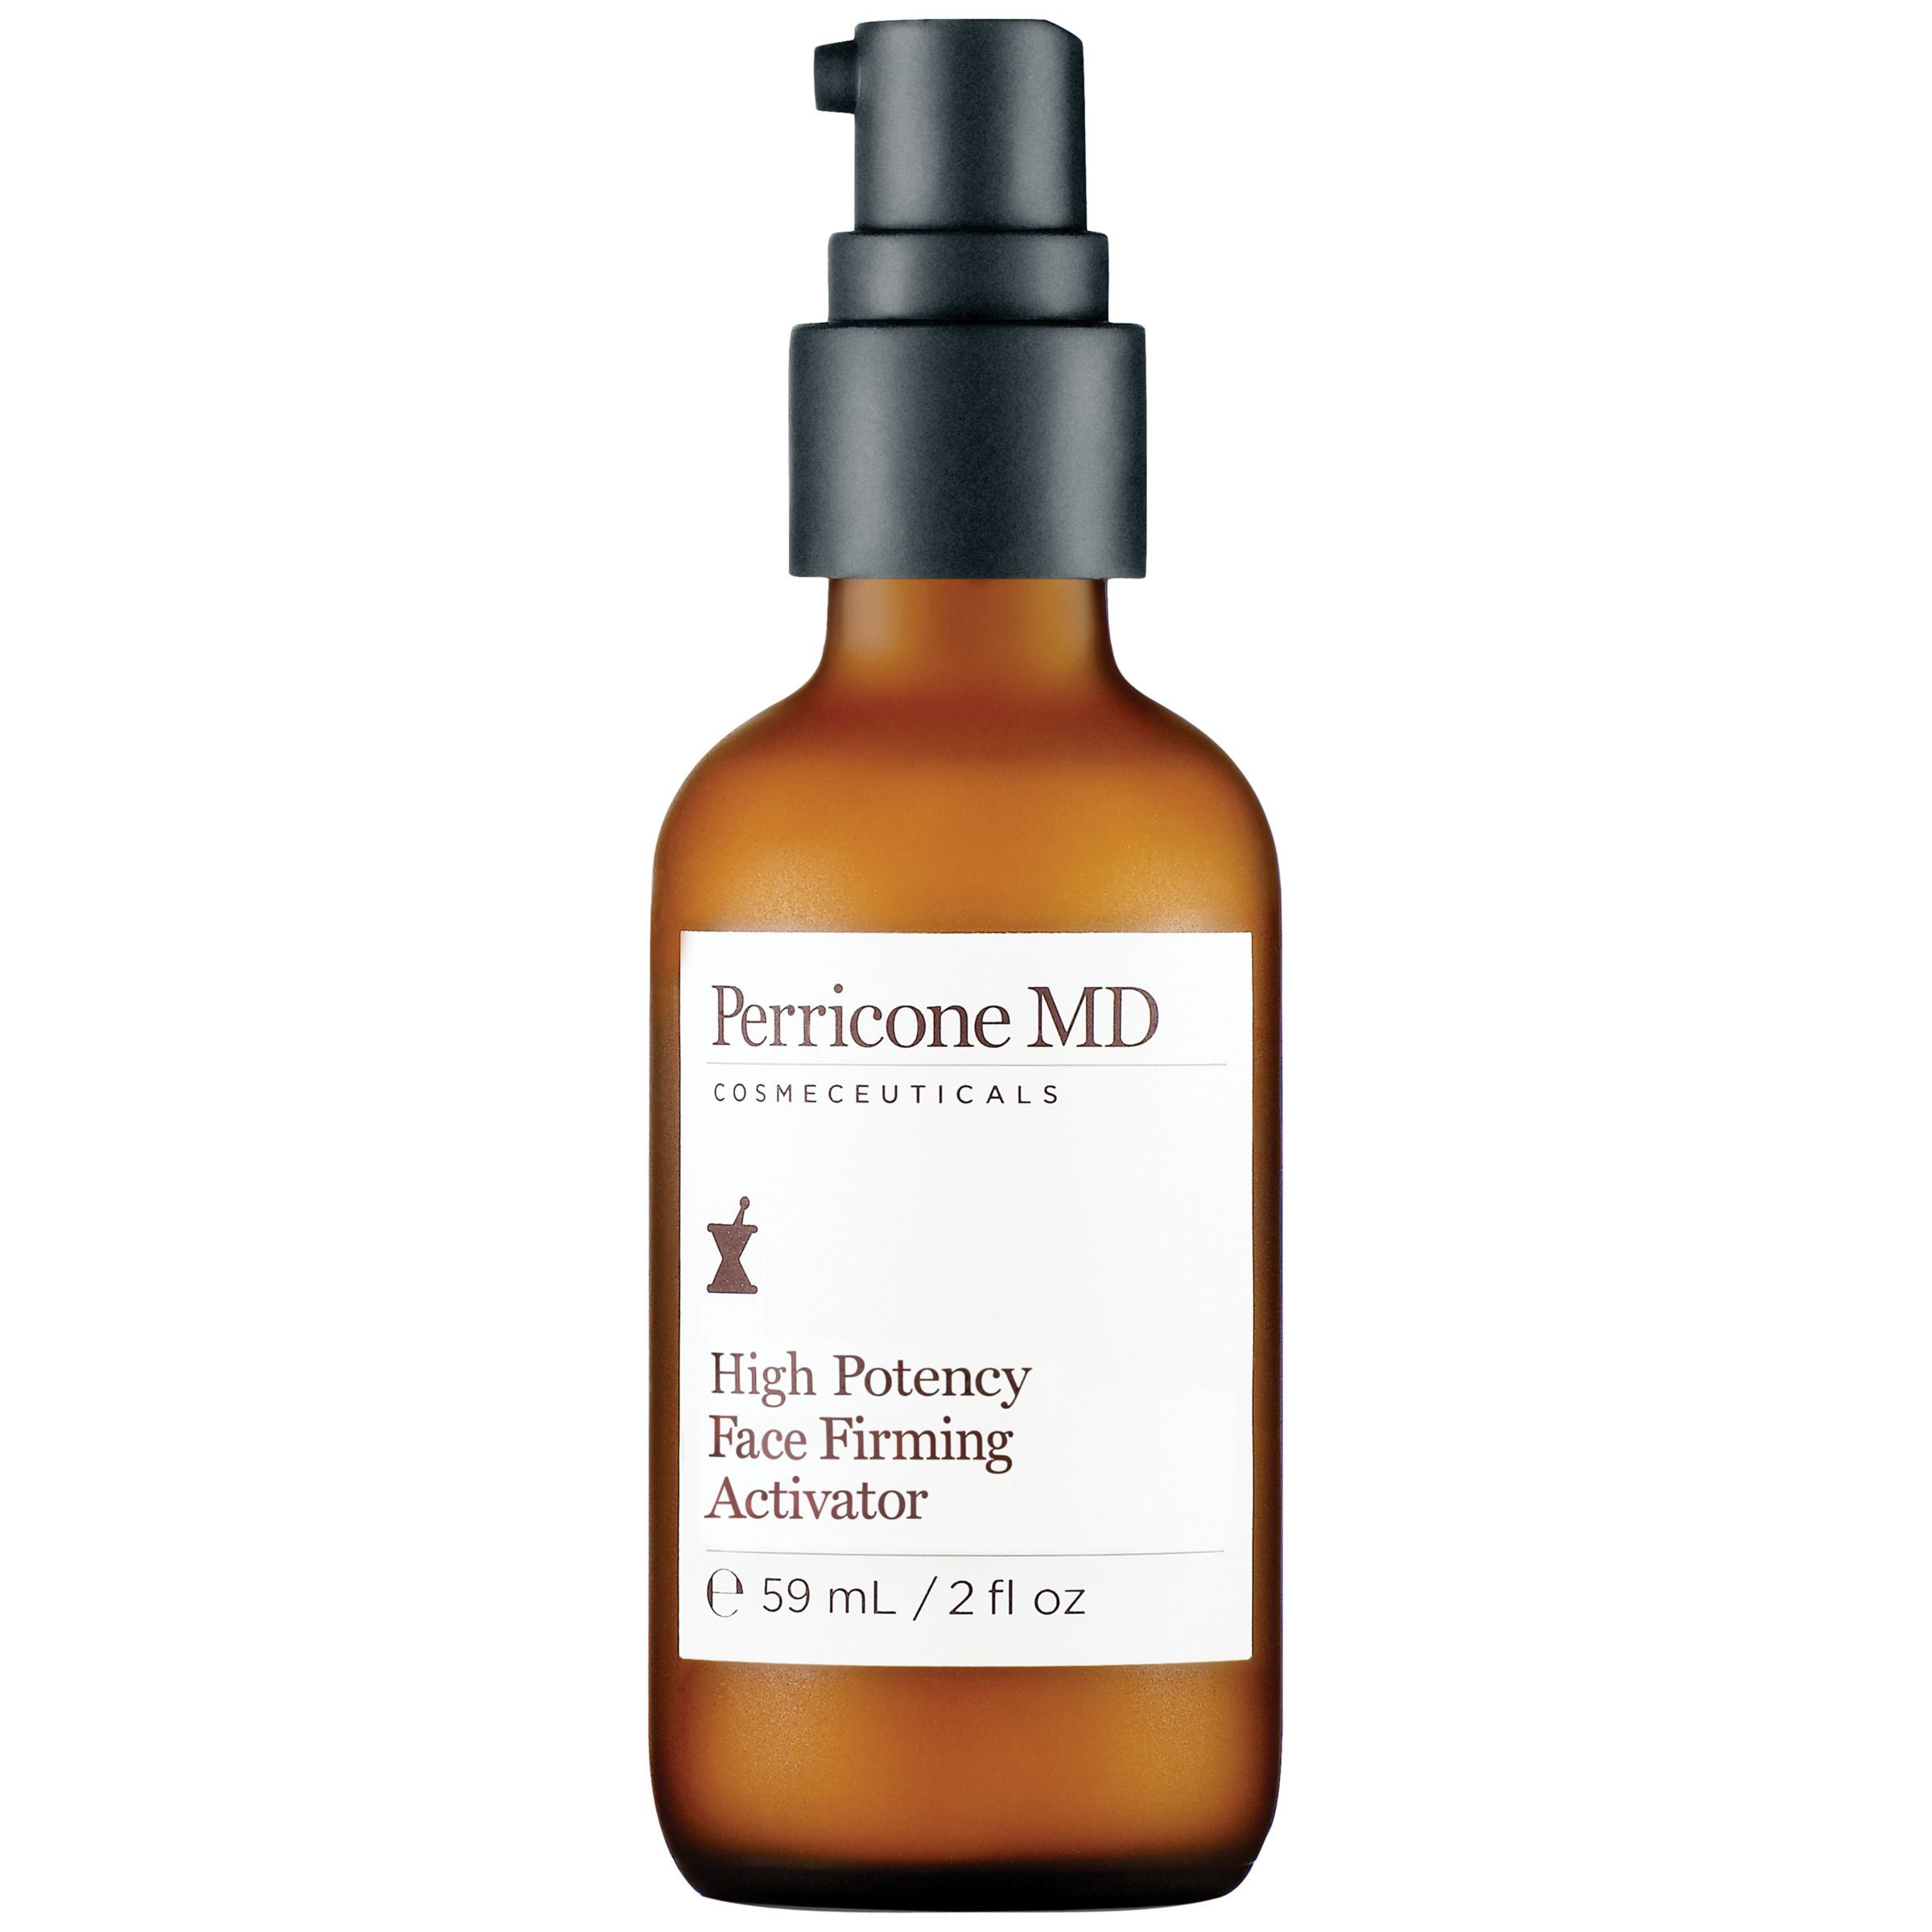 Perricone MD Perricone MD High Potency Face Firming Activator, 59ml